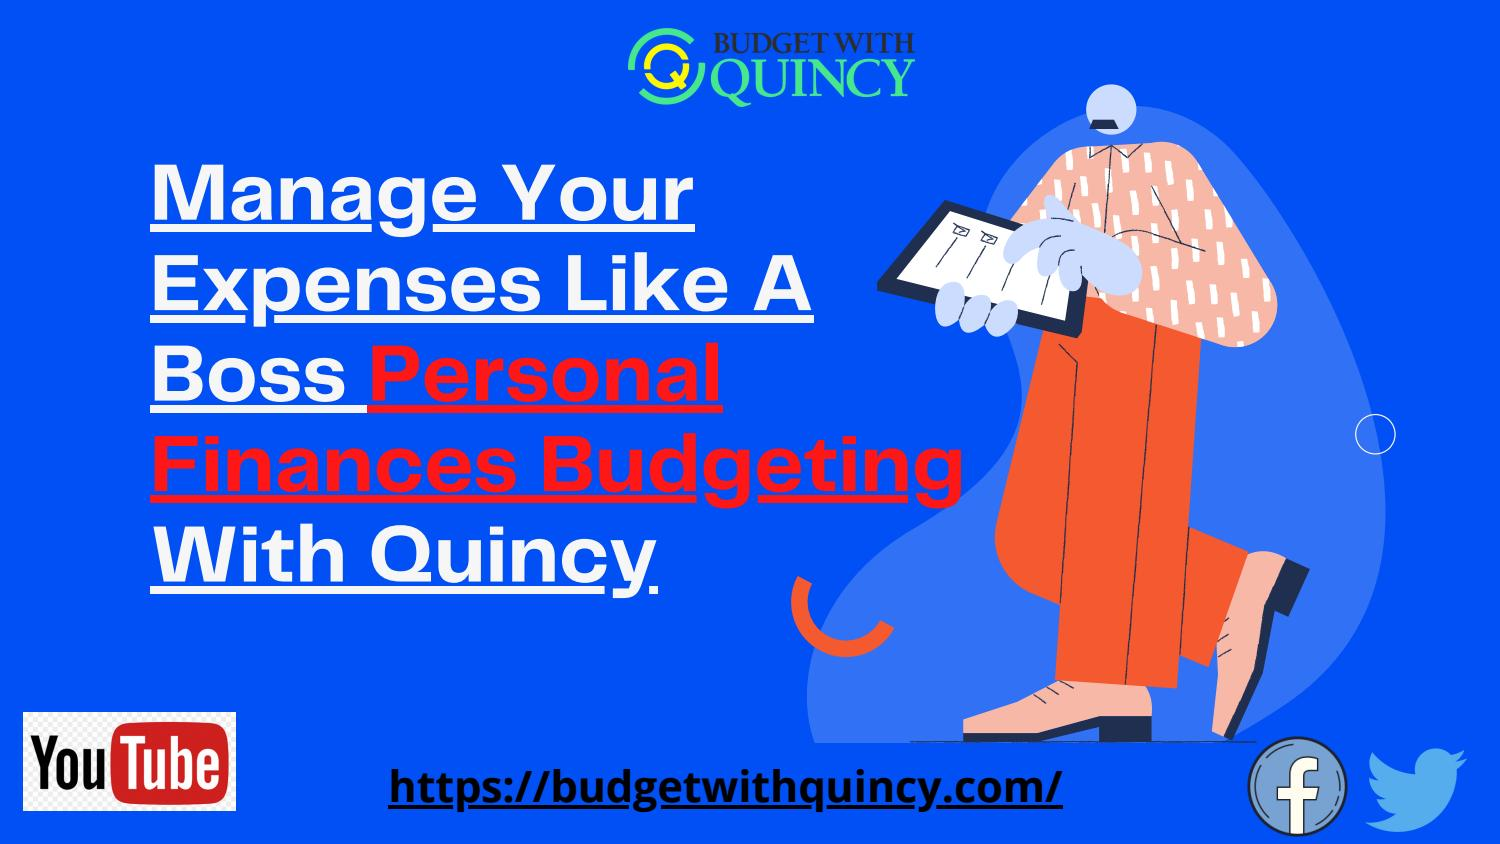 Manage Your Expenses Like A Boss Personal Finances Budgeting With Quincy